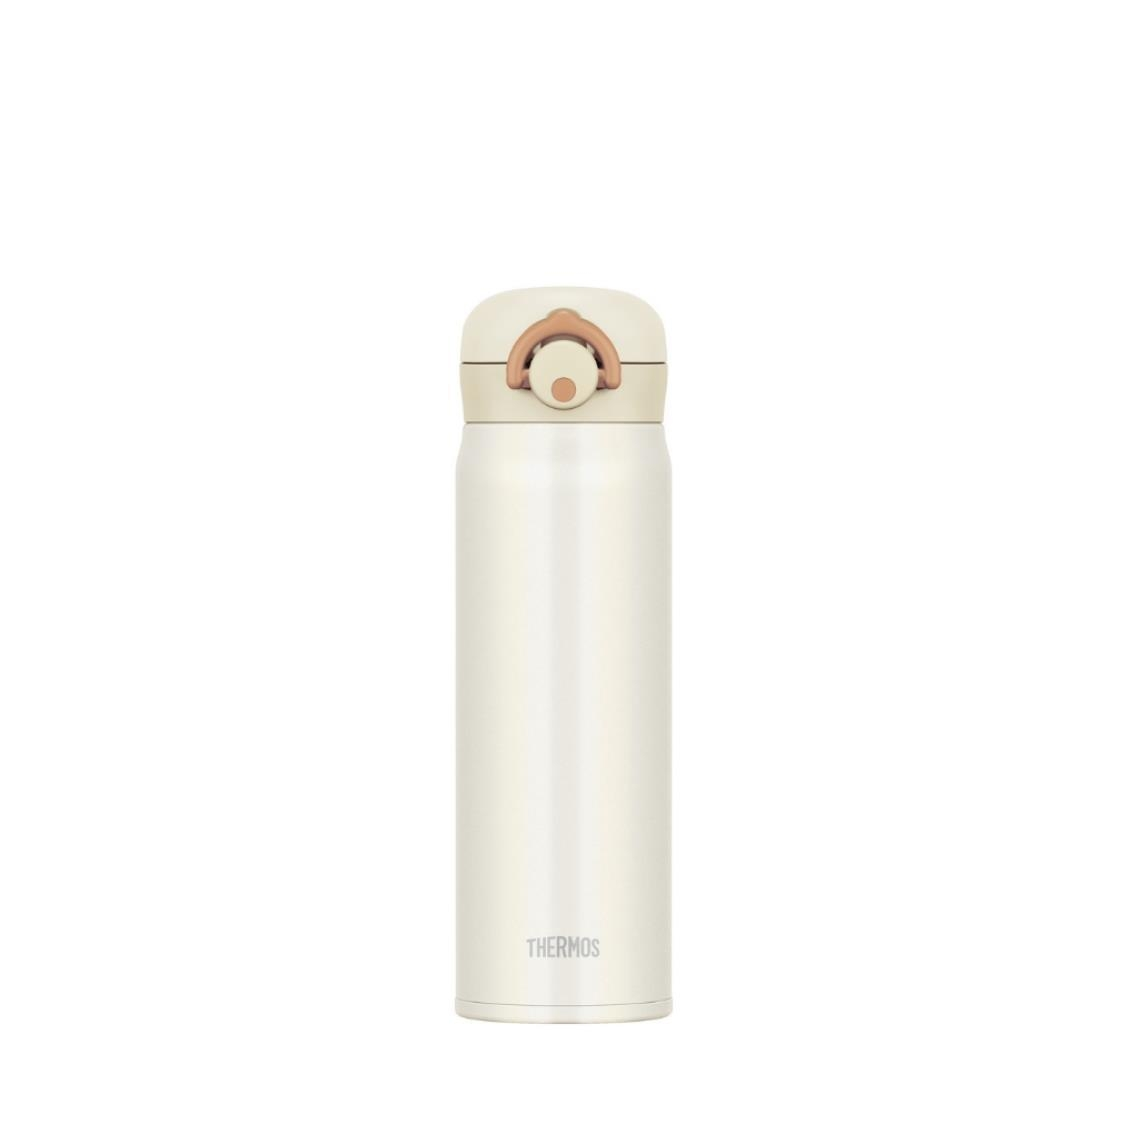 Thermos One Push Tumbler With Local Design Stickers 05L Cream White